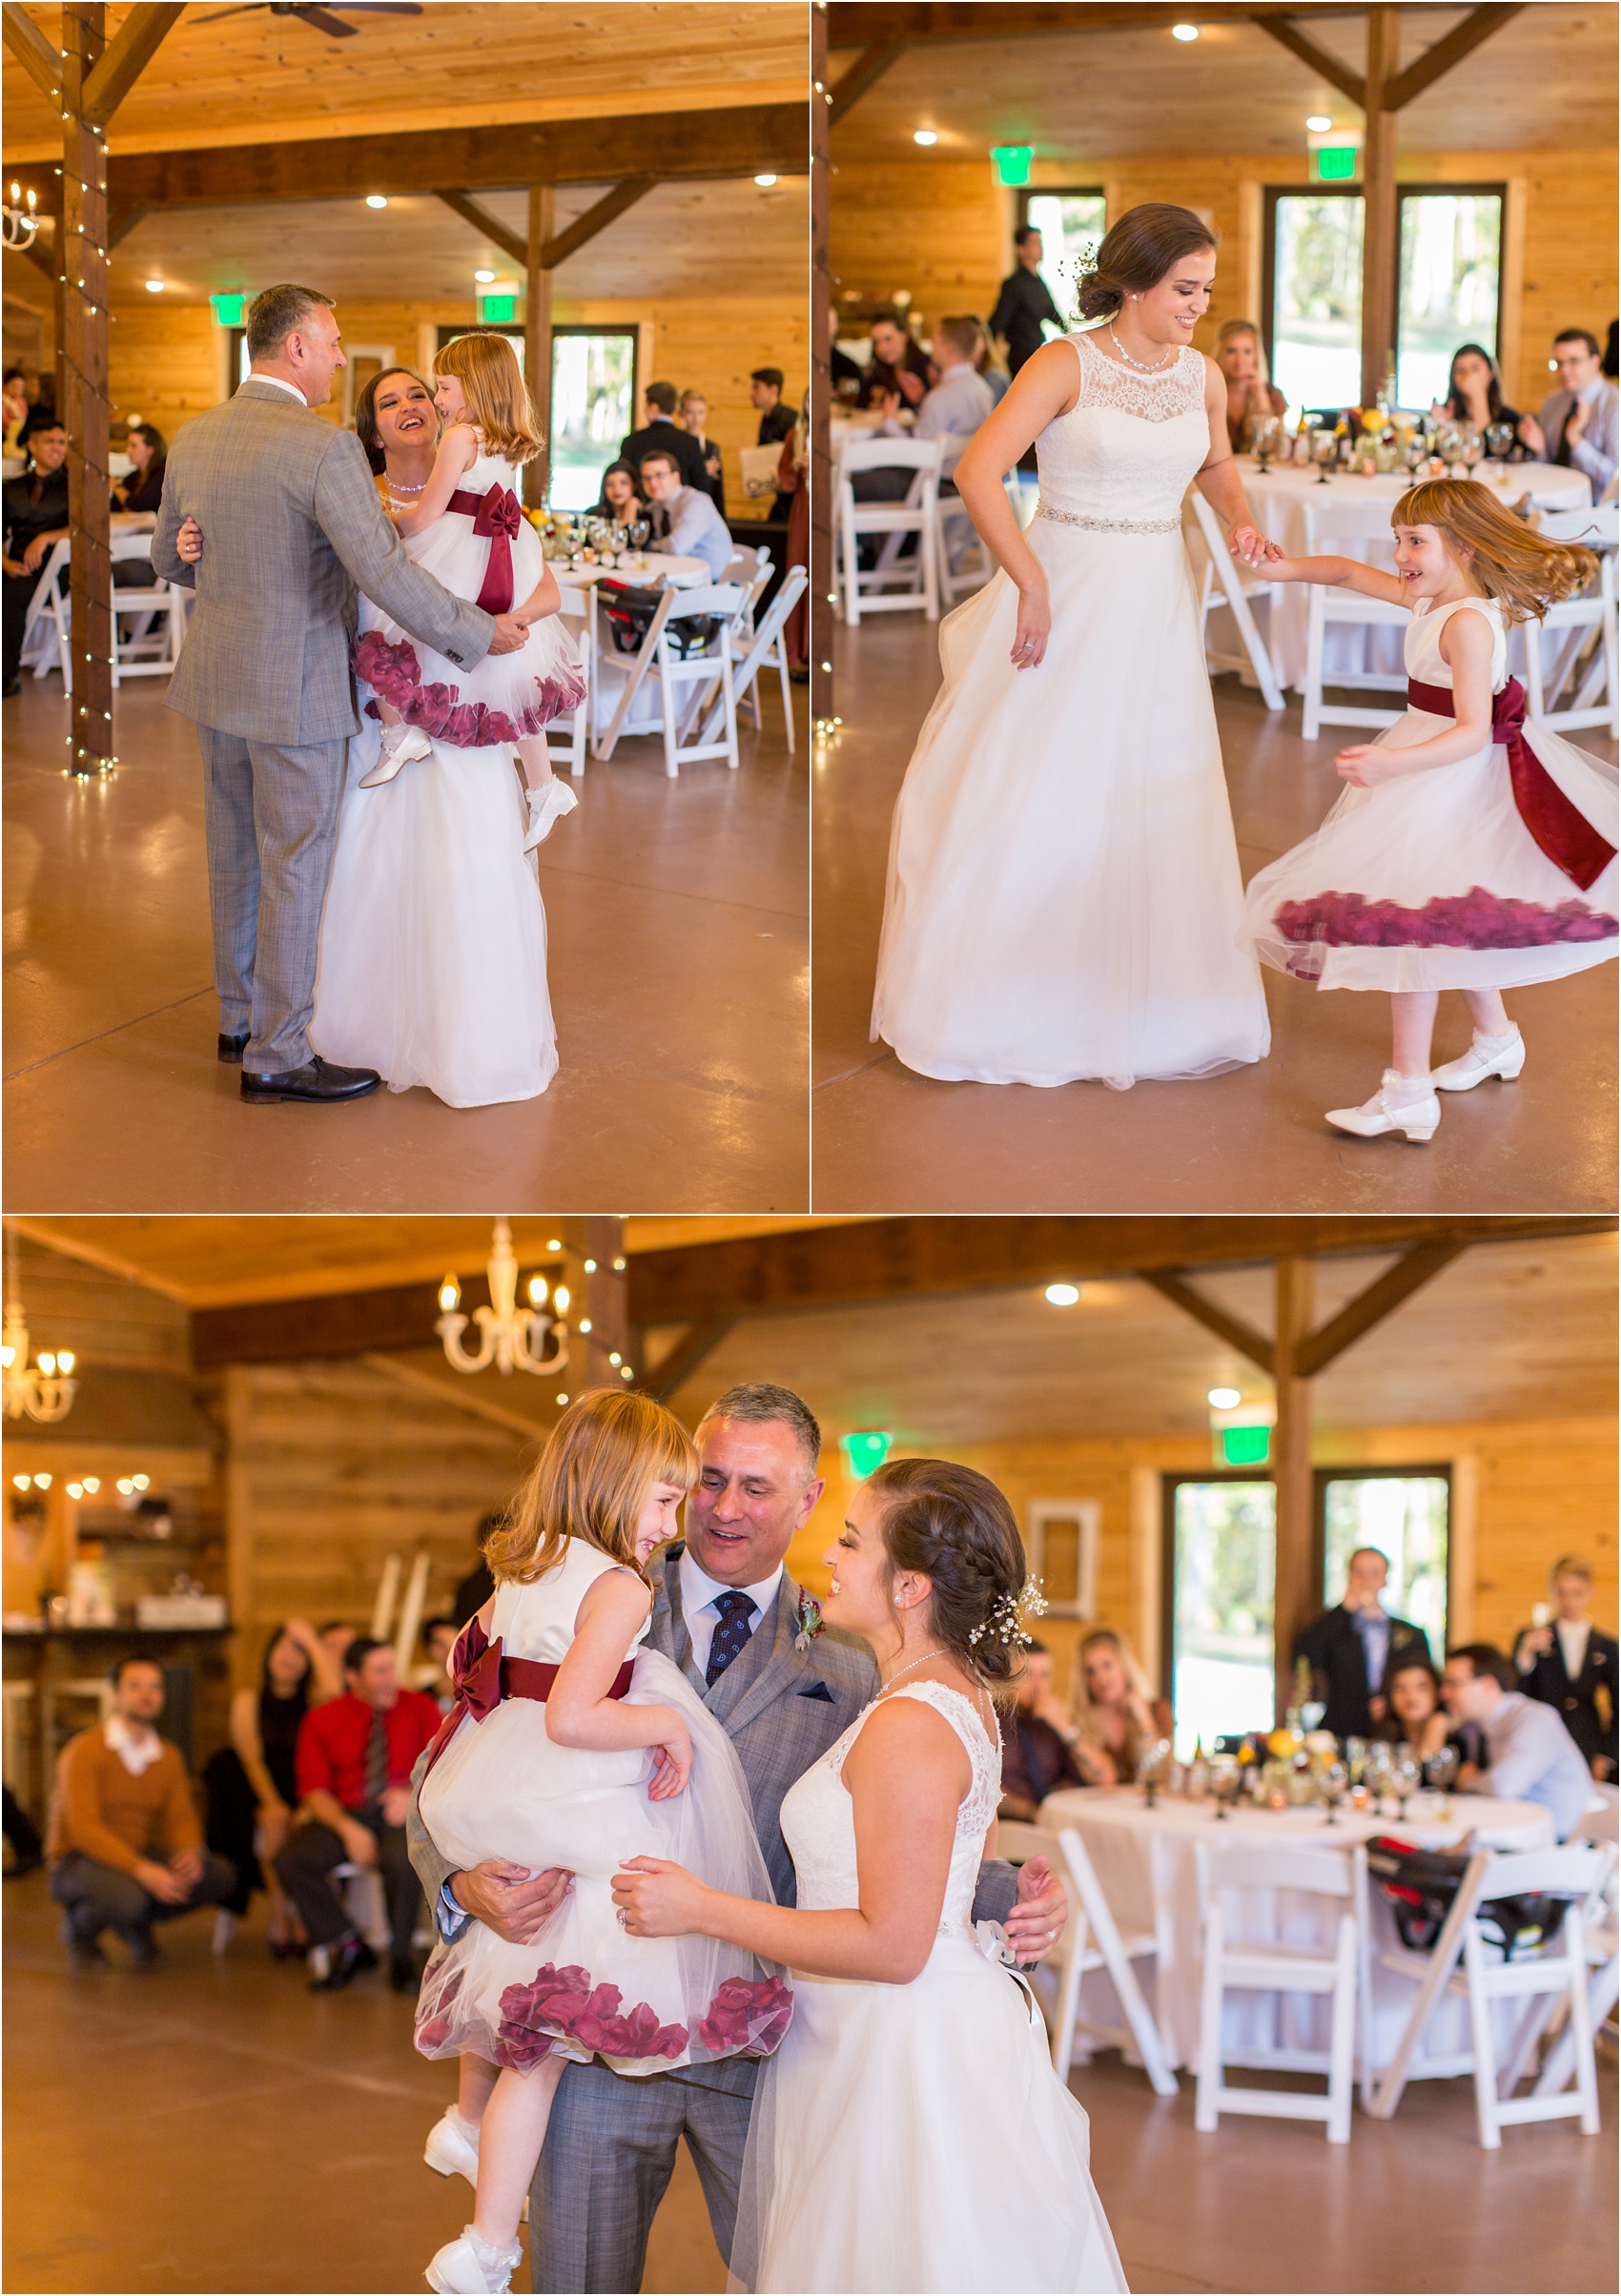 Savannah Eve Photography- McGeary-Epp Wedding- Sneak Peek-98.jpg